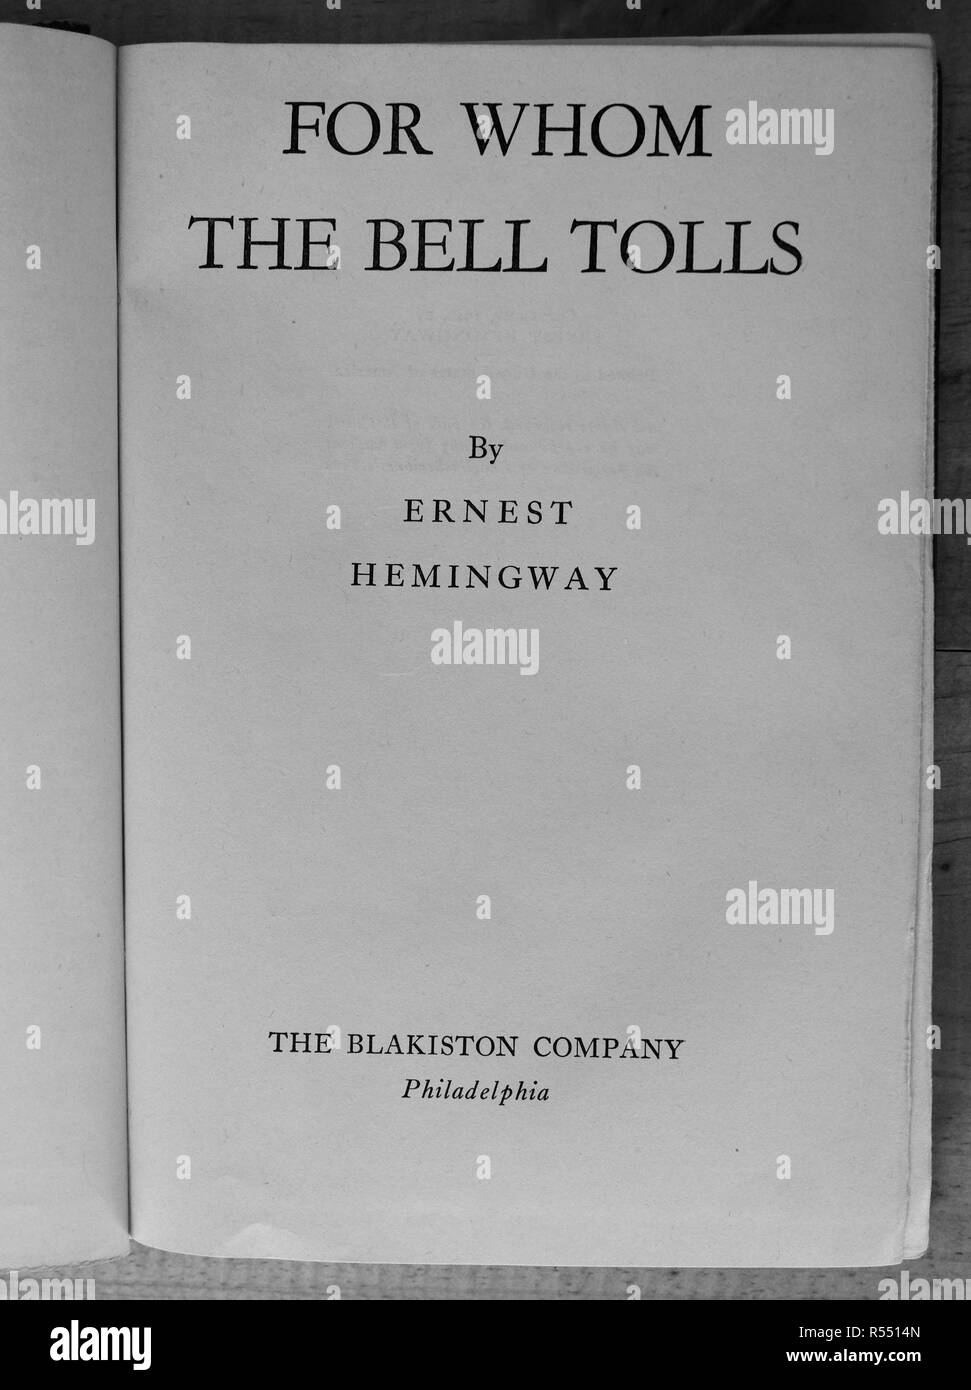 For Whom the Bell Tolls title page - Stock Image